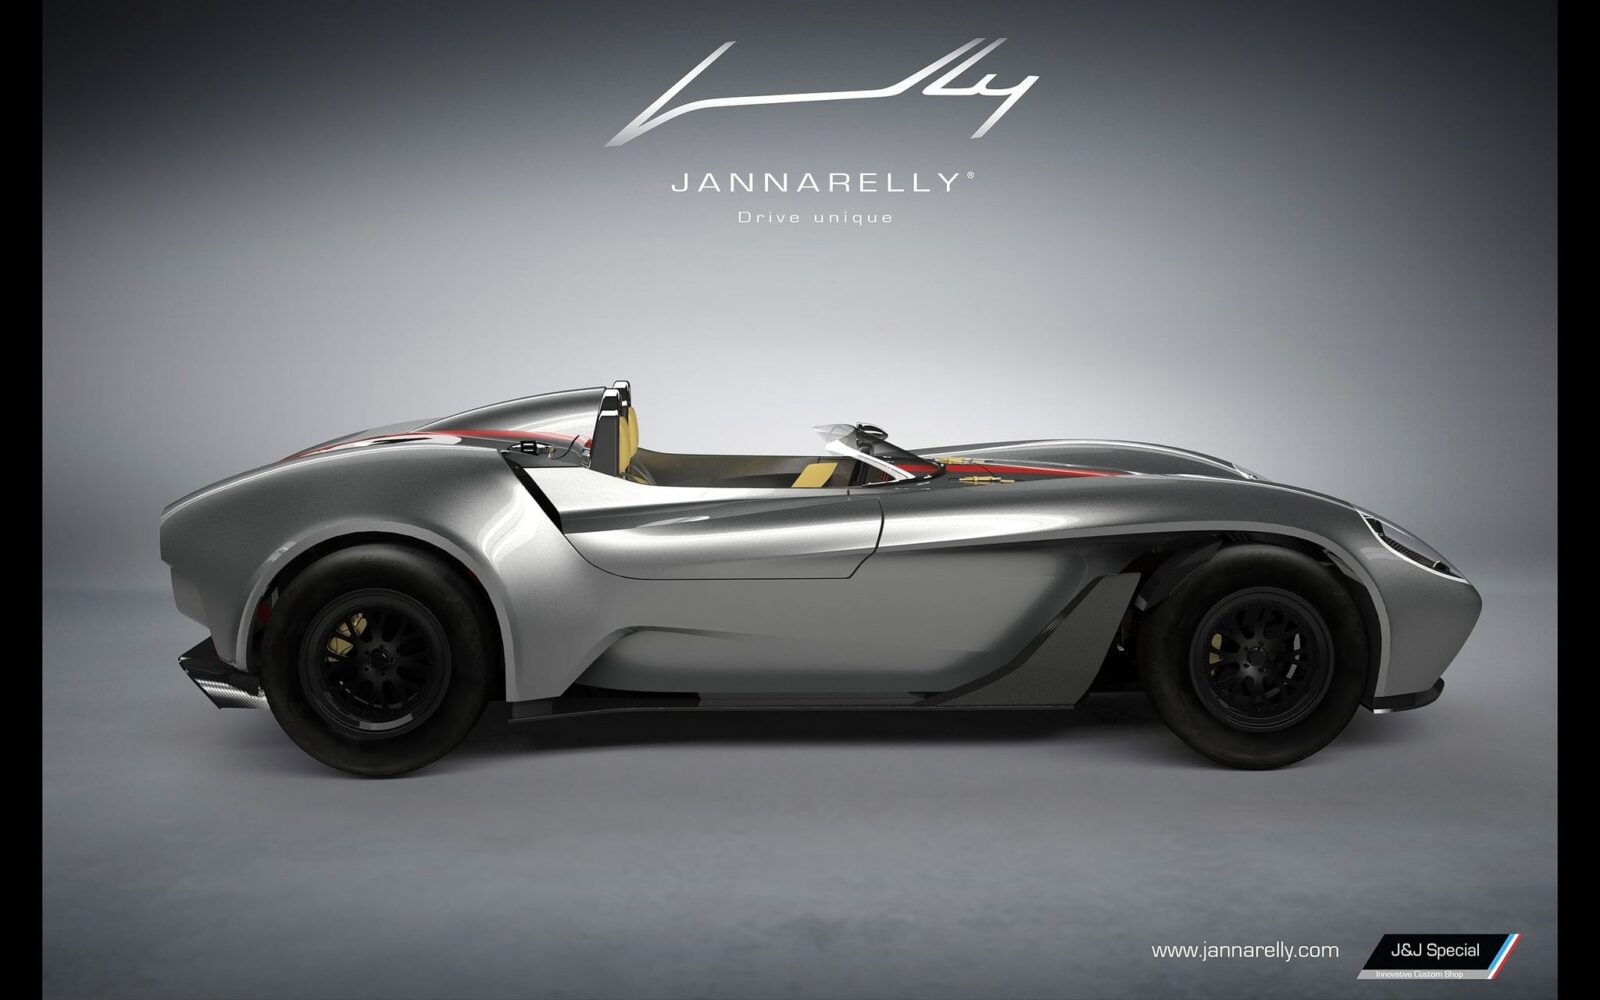 2016 Jannarelly HD pic for PC